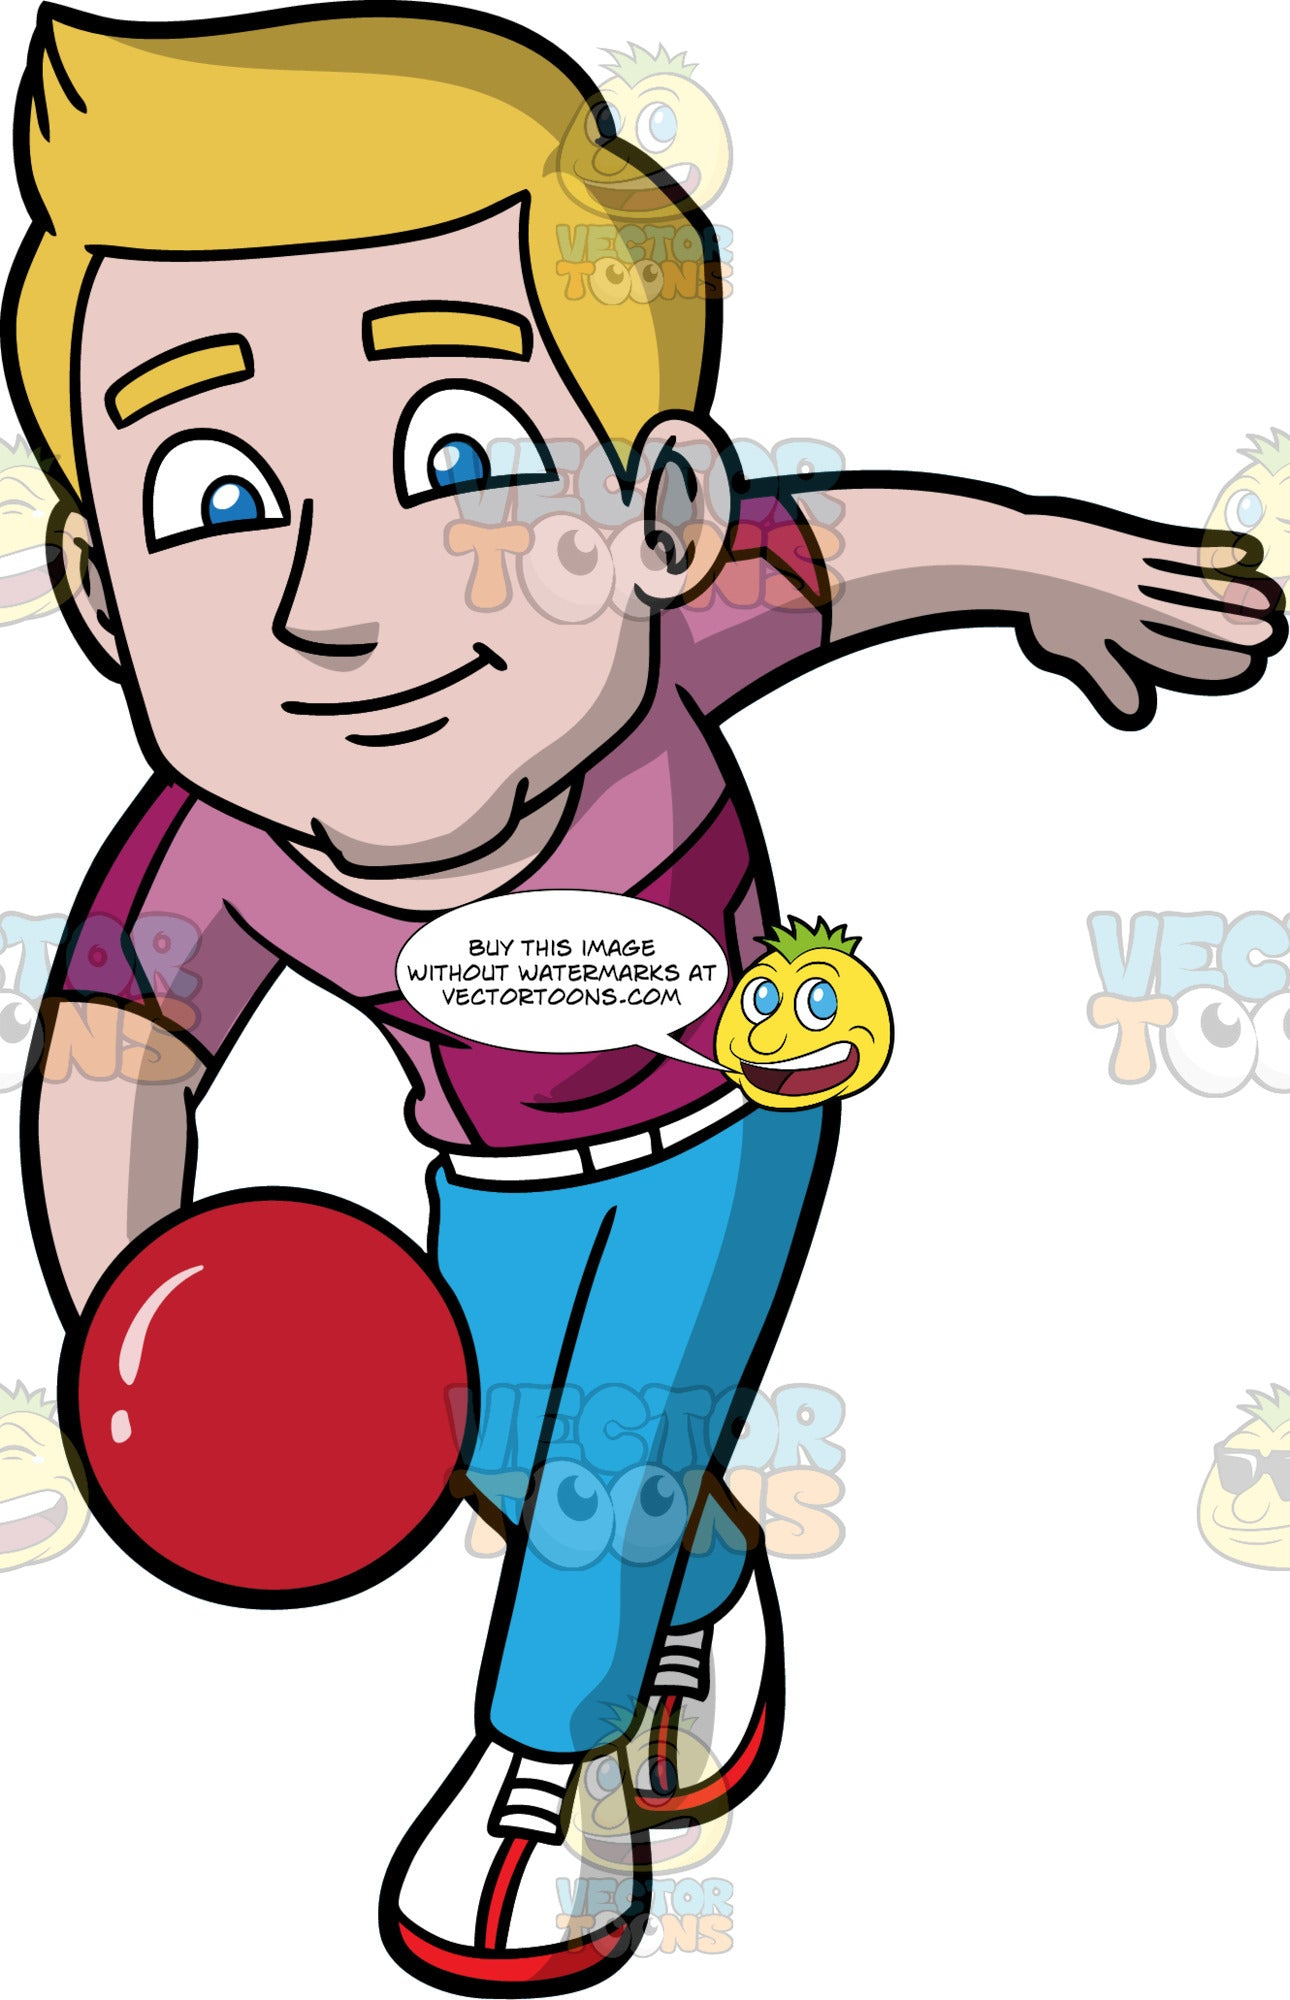 Matthew Enjoying A Game Of Bowling. A man with dirty blonde hair, wearing blue pants, a two toned purple shirt, and white with red bowling shoes, about to release a red bowling ball down the lane